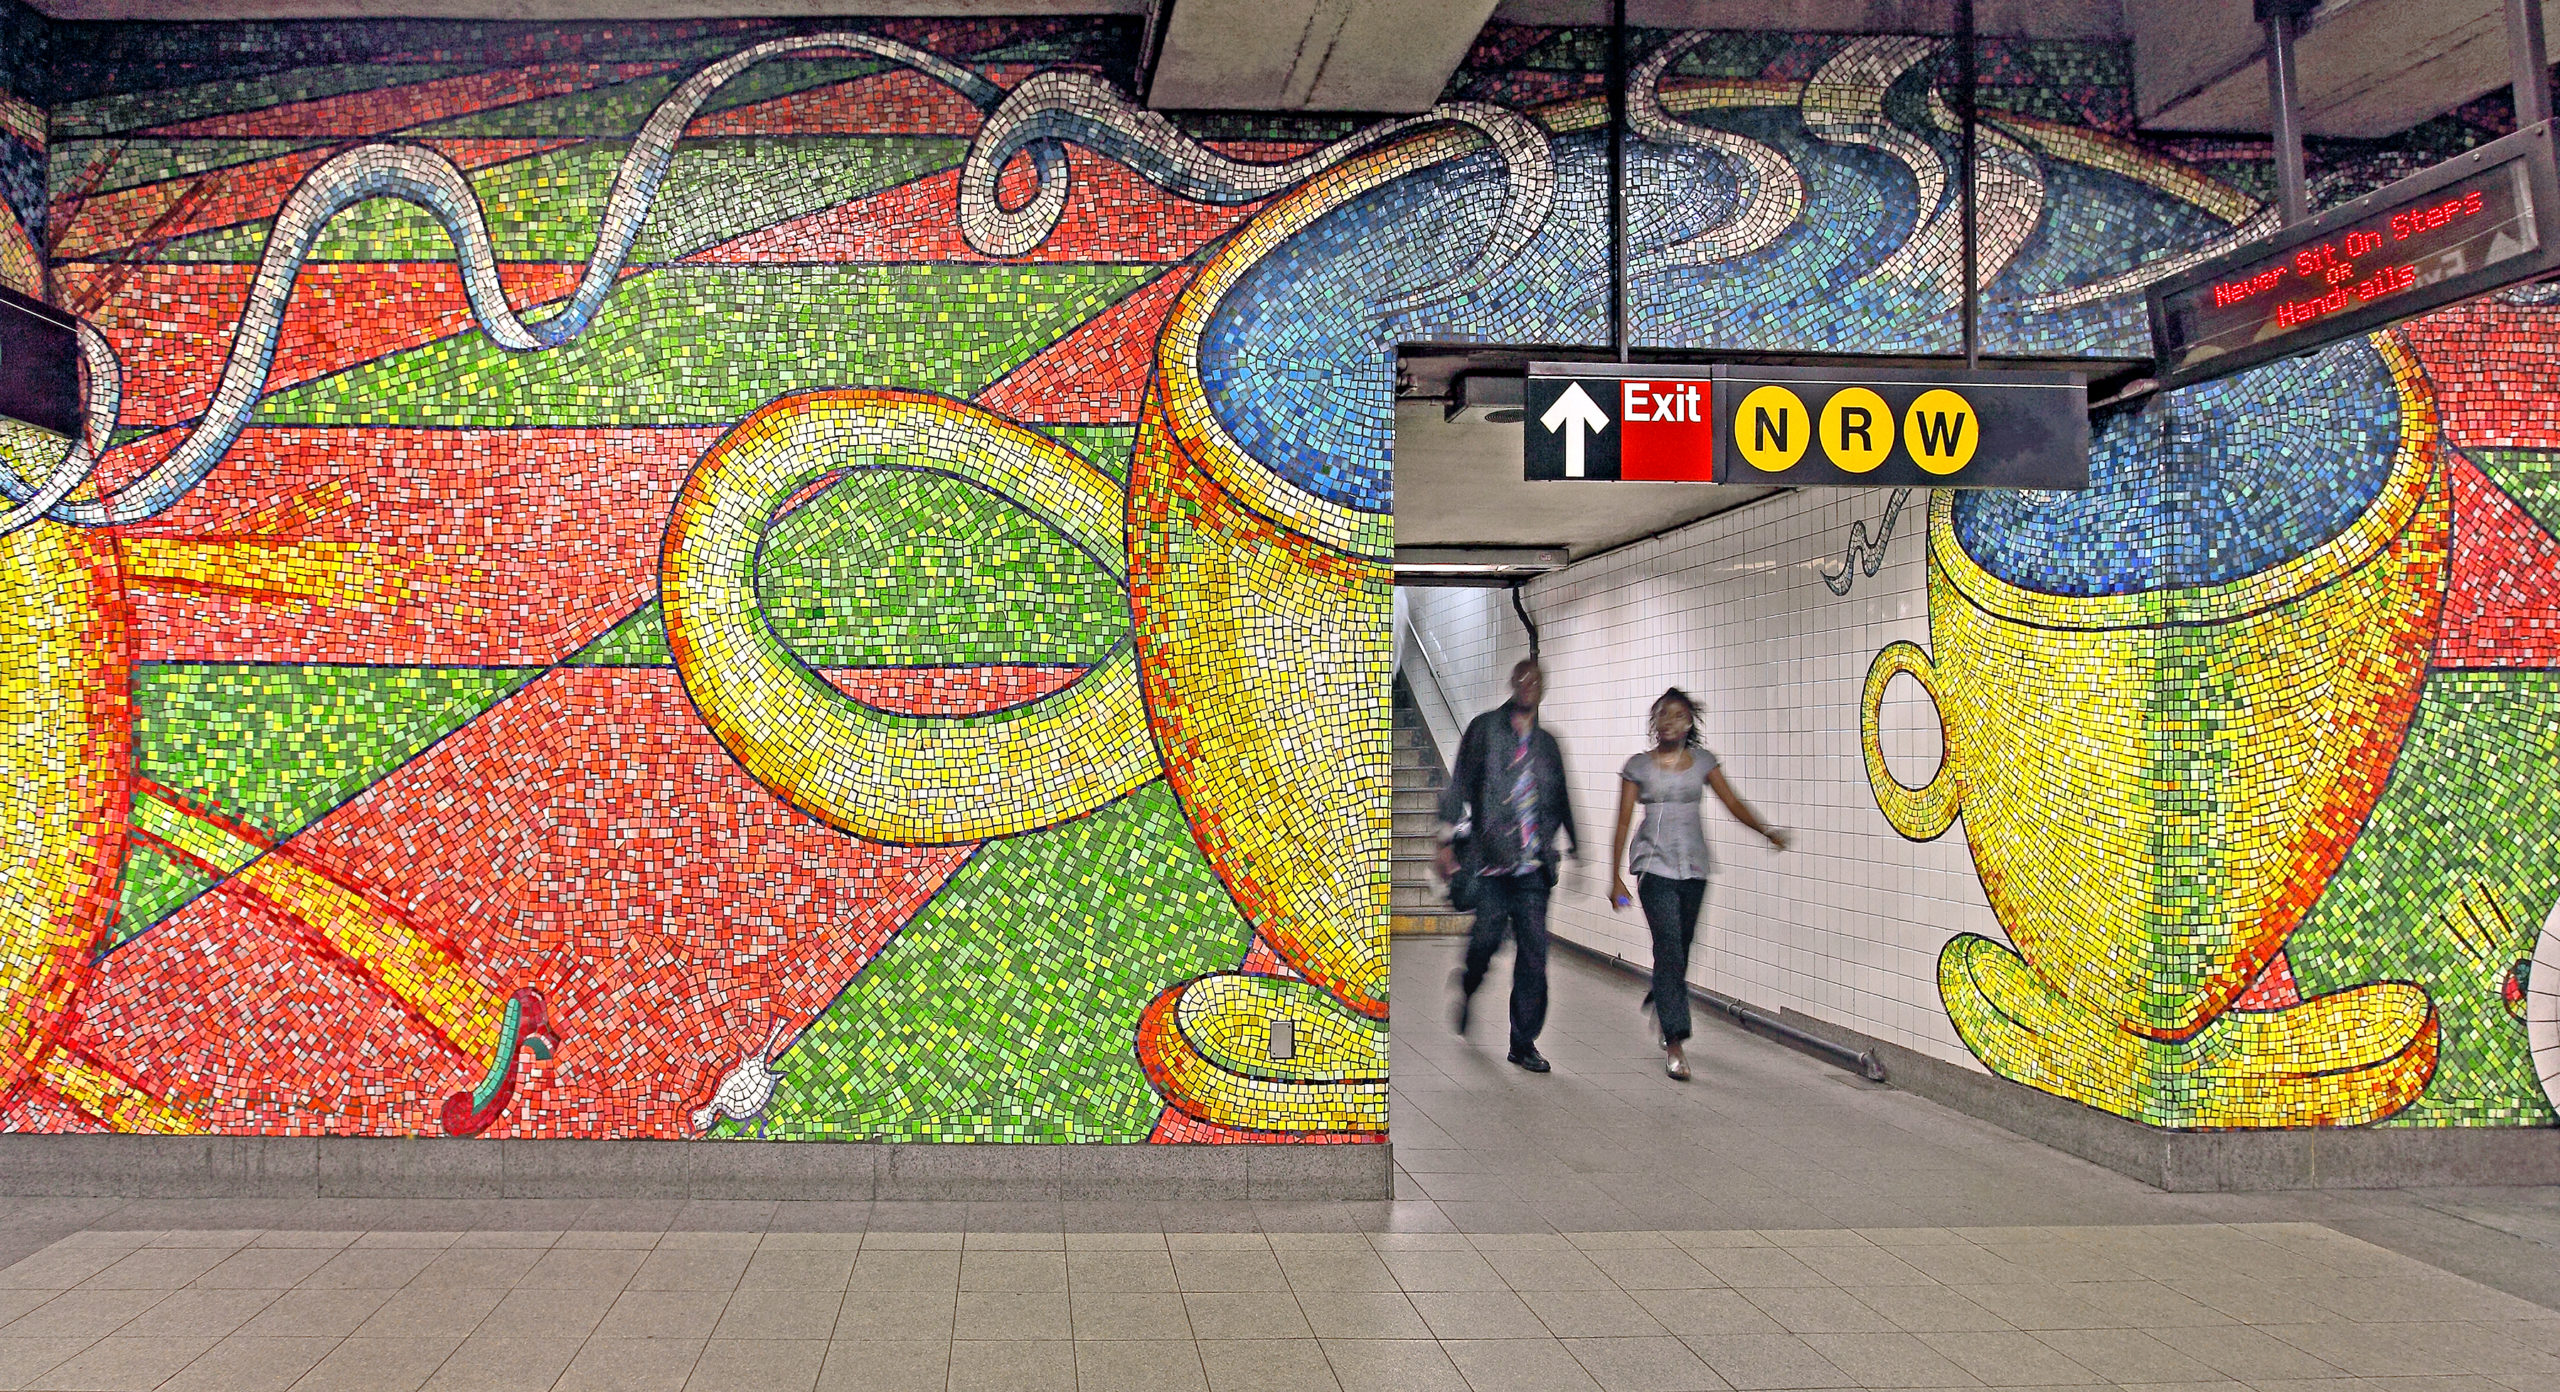 """Glass Mosaic Mural by Elizabeth Murray at 59th St Subway Station. Title: """"Blooming"""" 1996"""